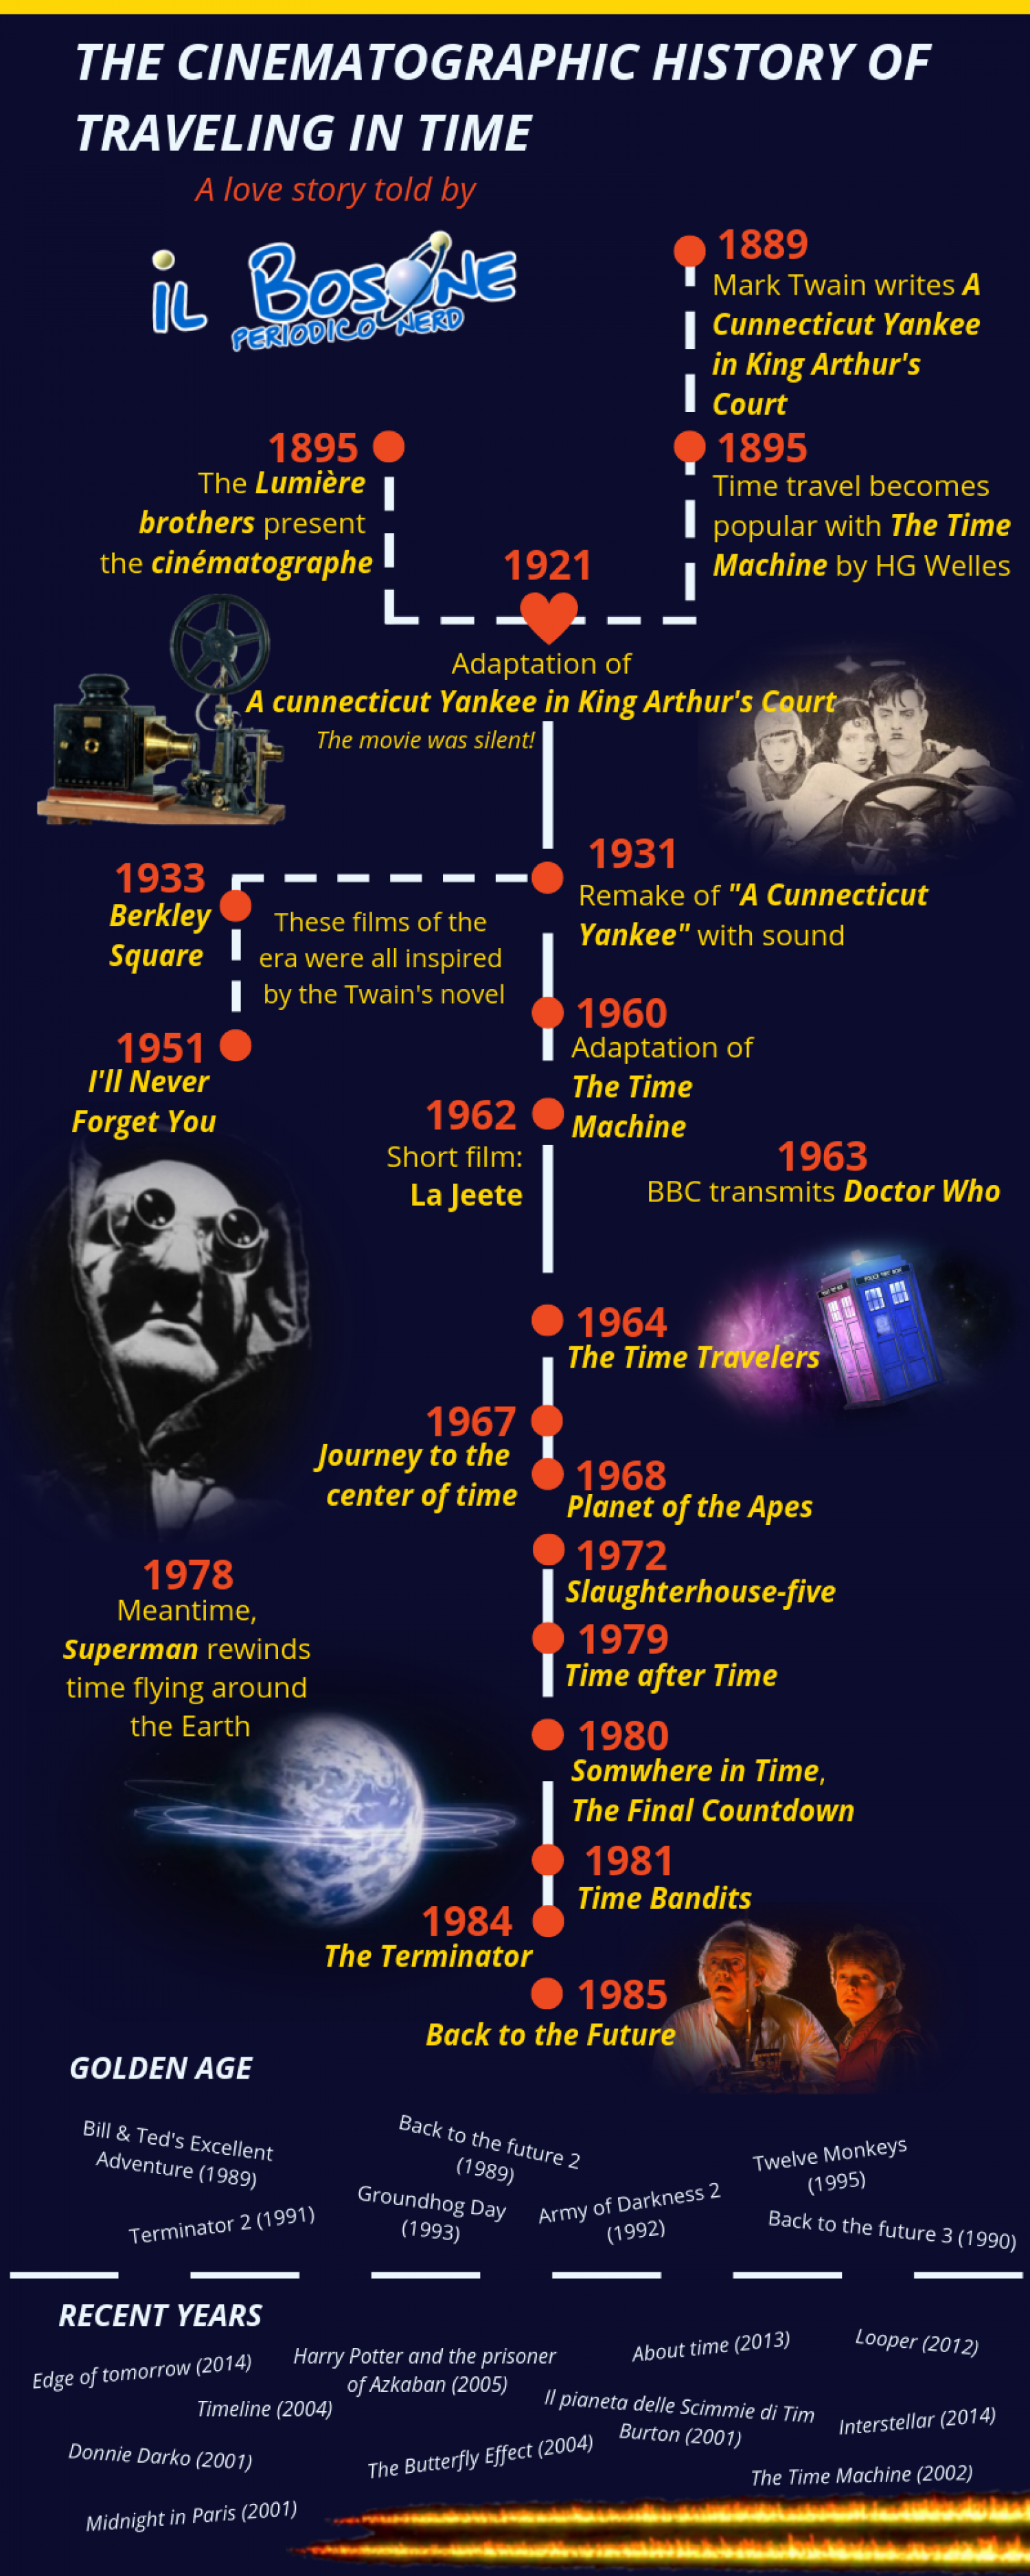 THE CINEMATOGRAPHIC HISTORY OF TRAVELING IN TIME Infographic